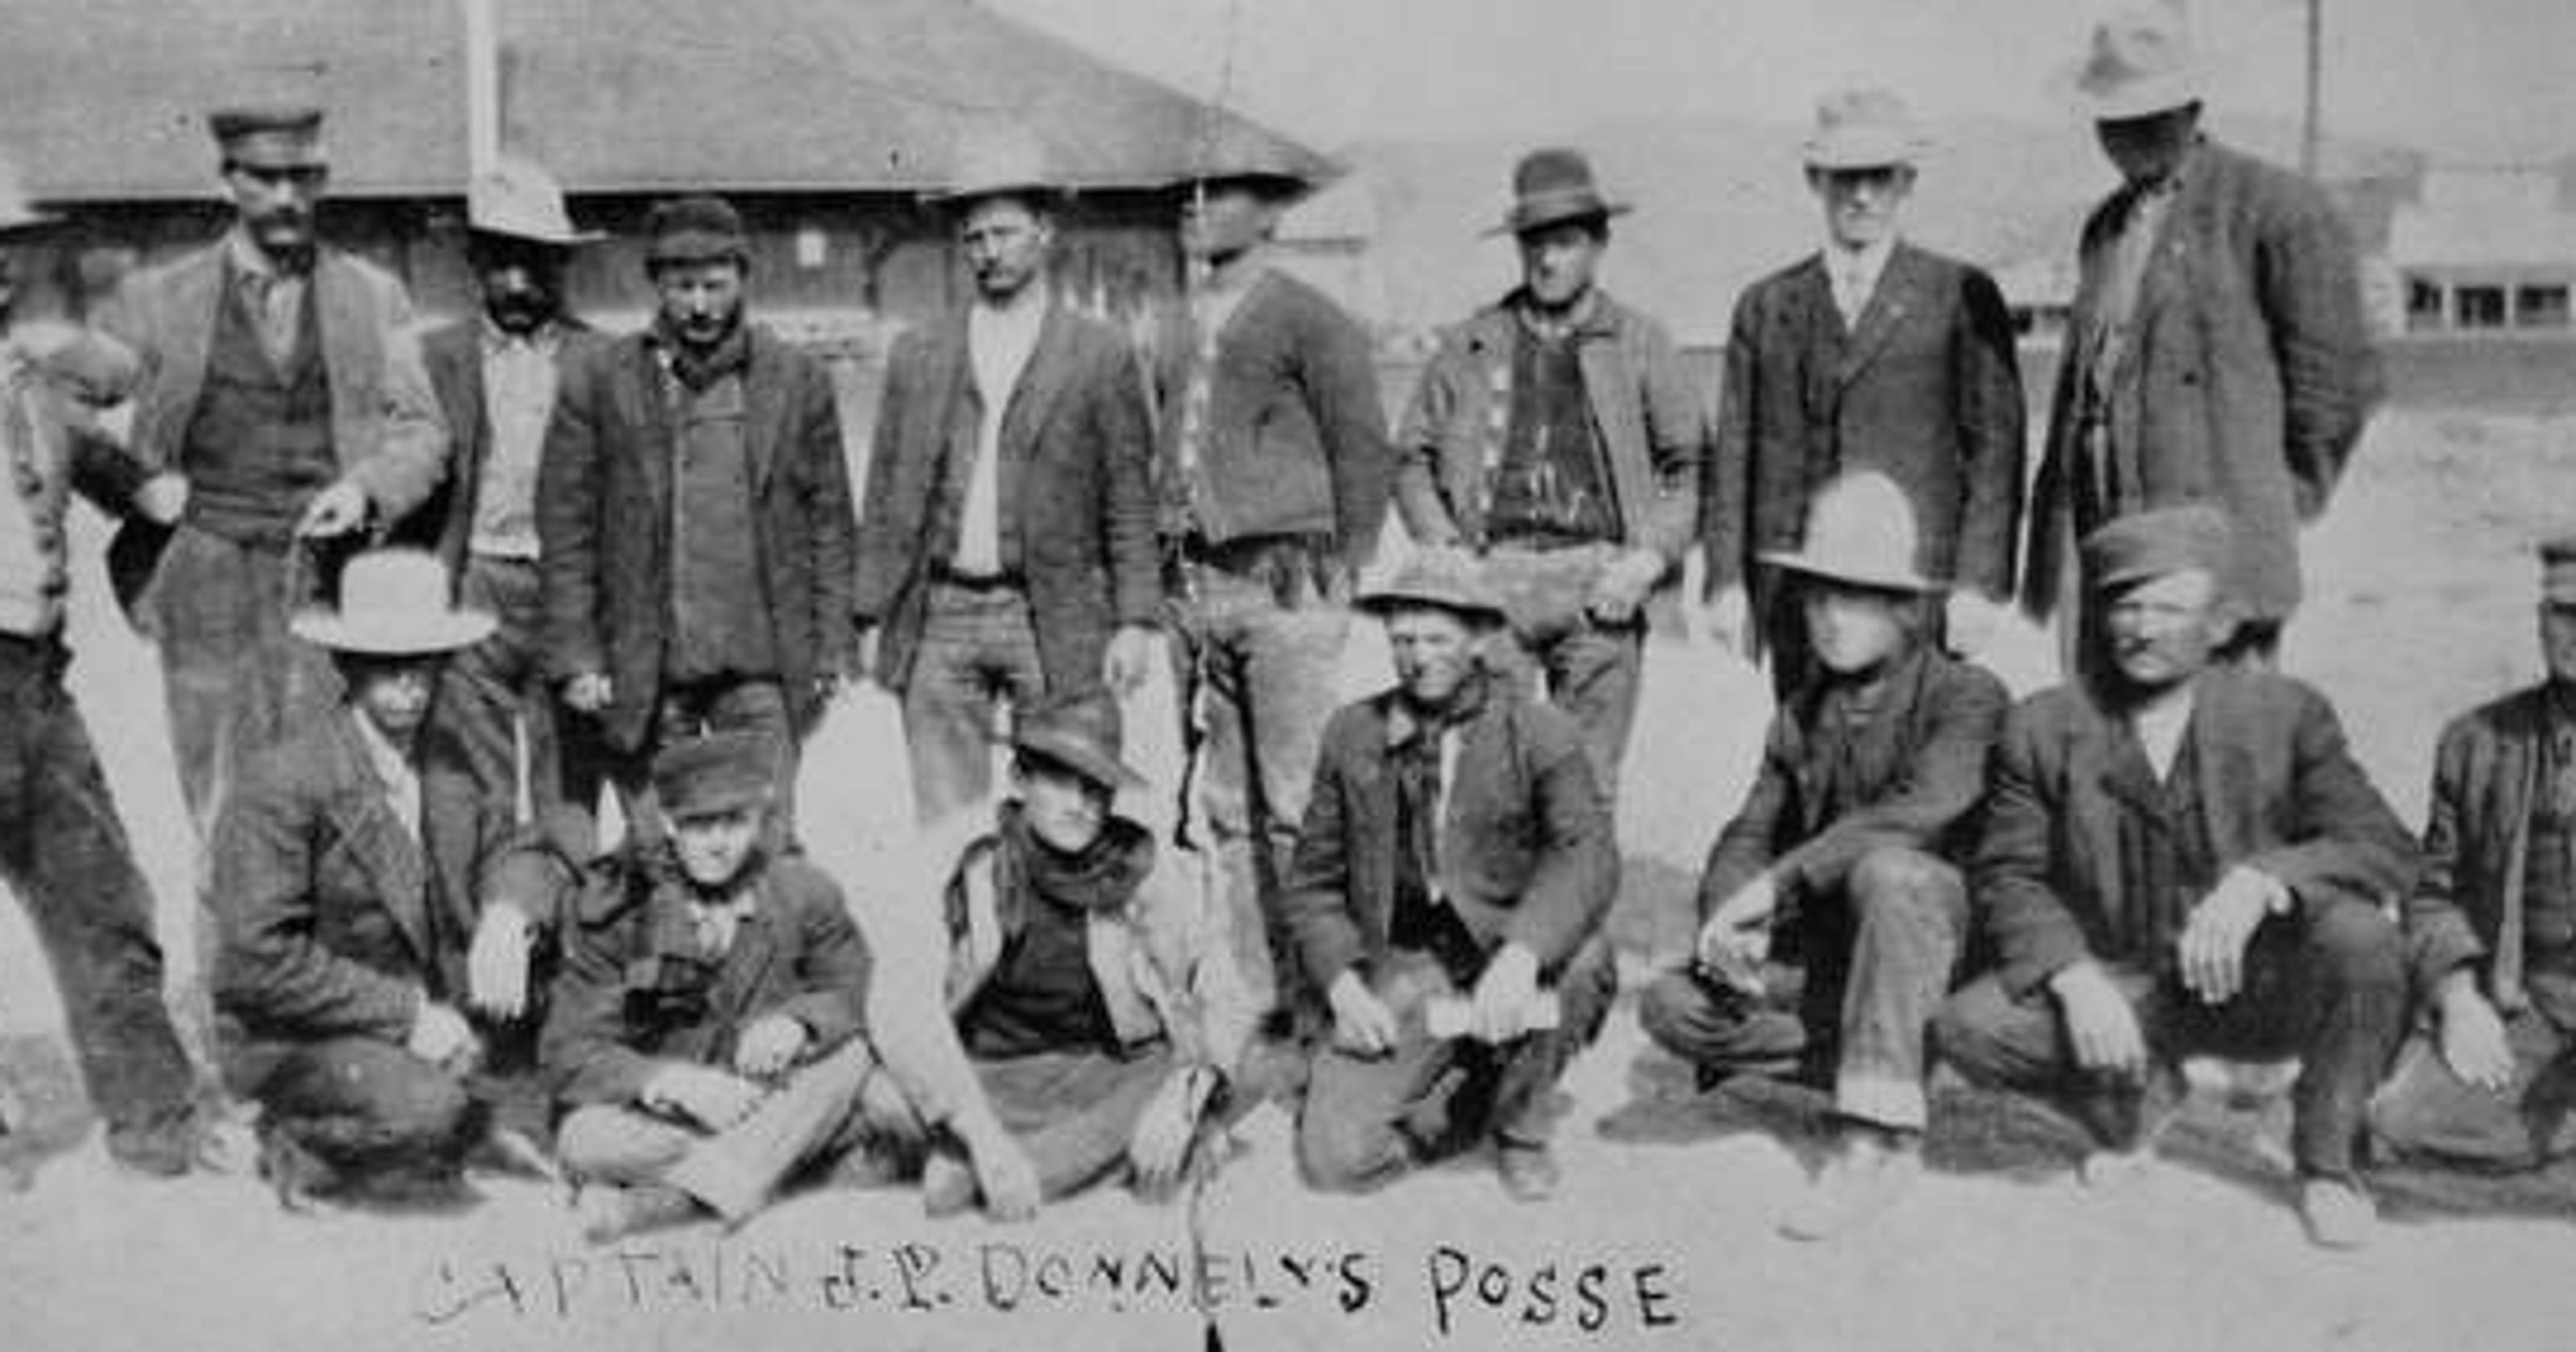 Shoshone Mike New Theories Emerge 100 Years After Last Massacre